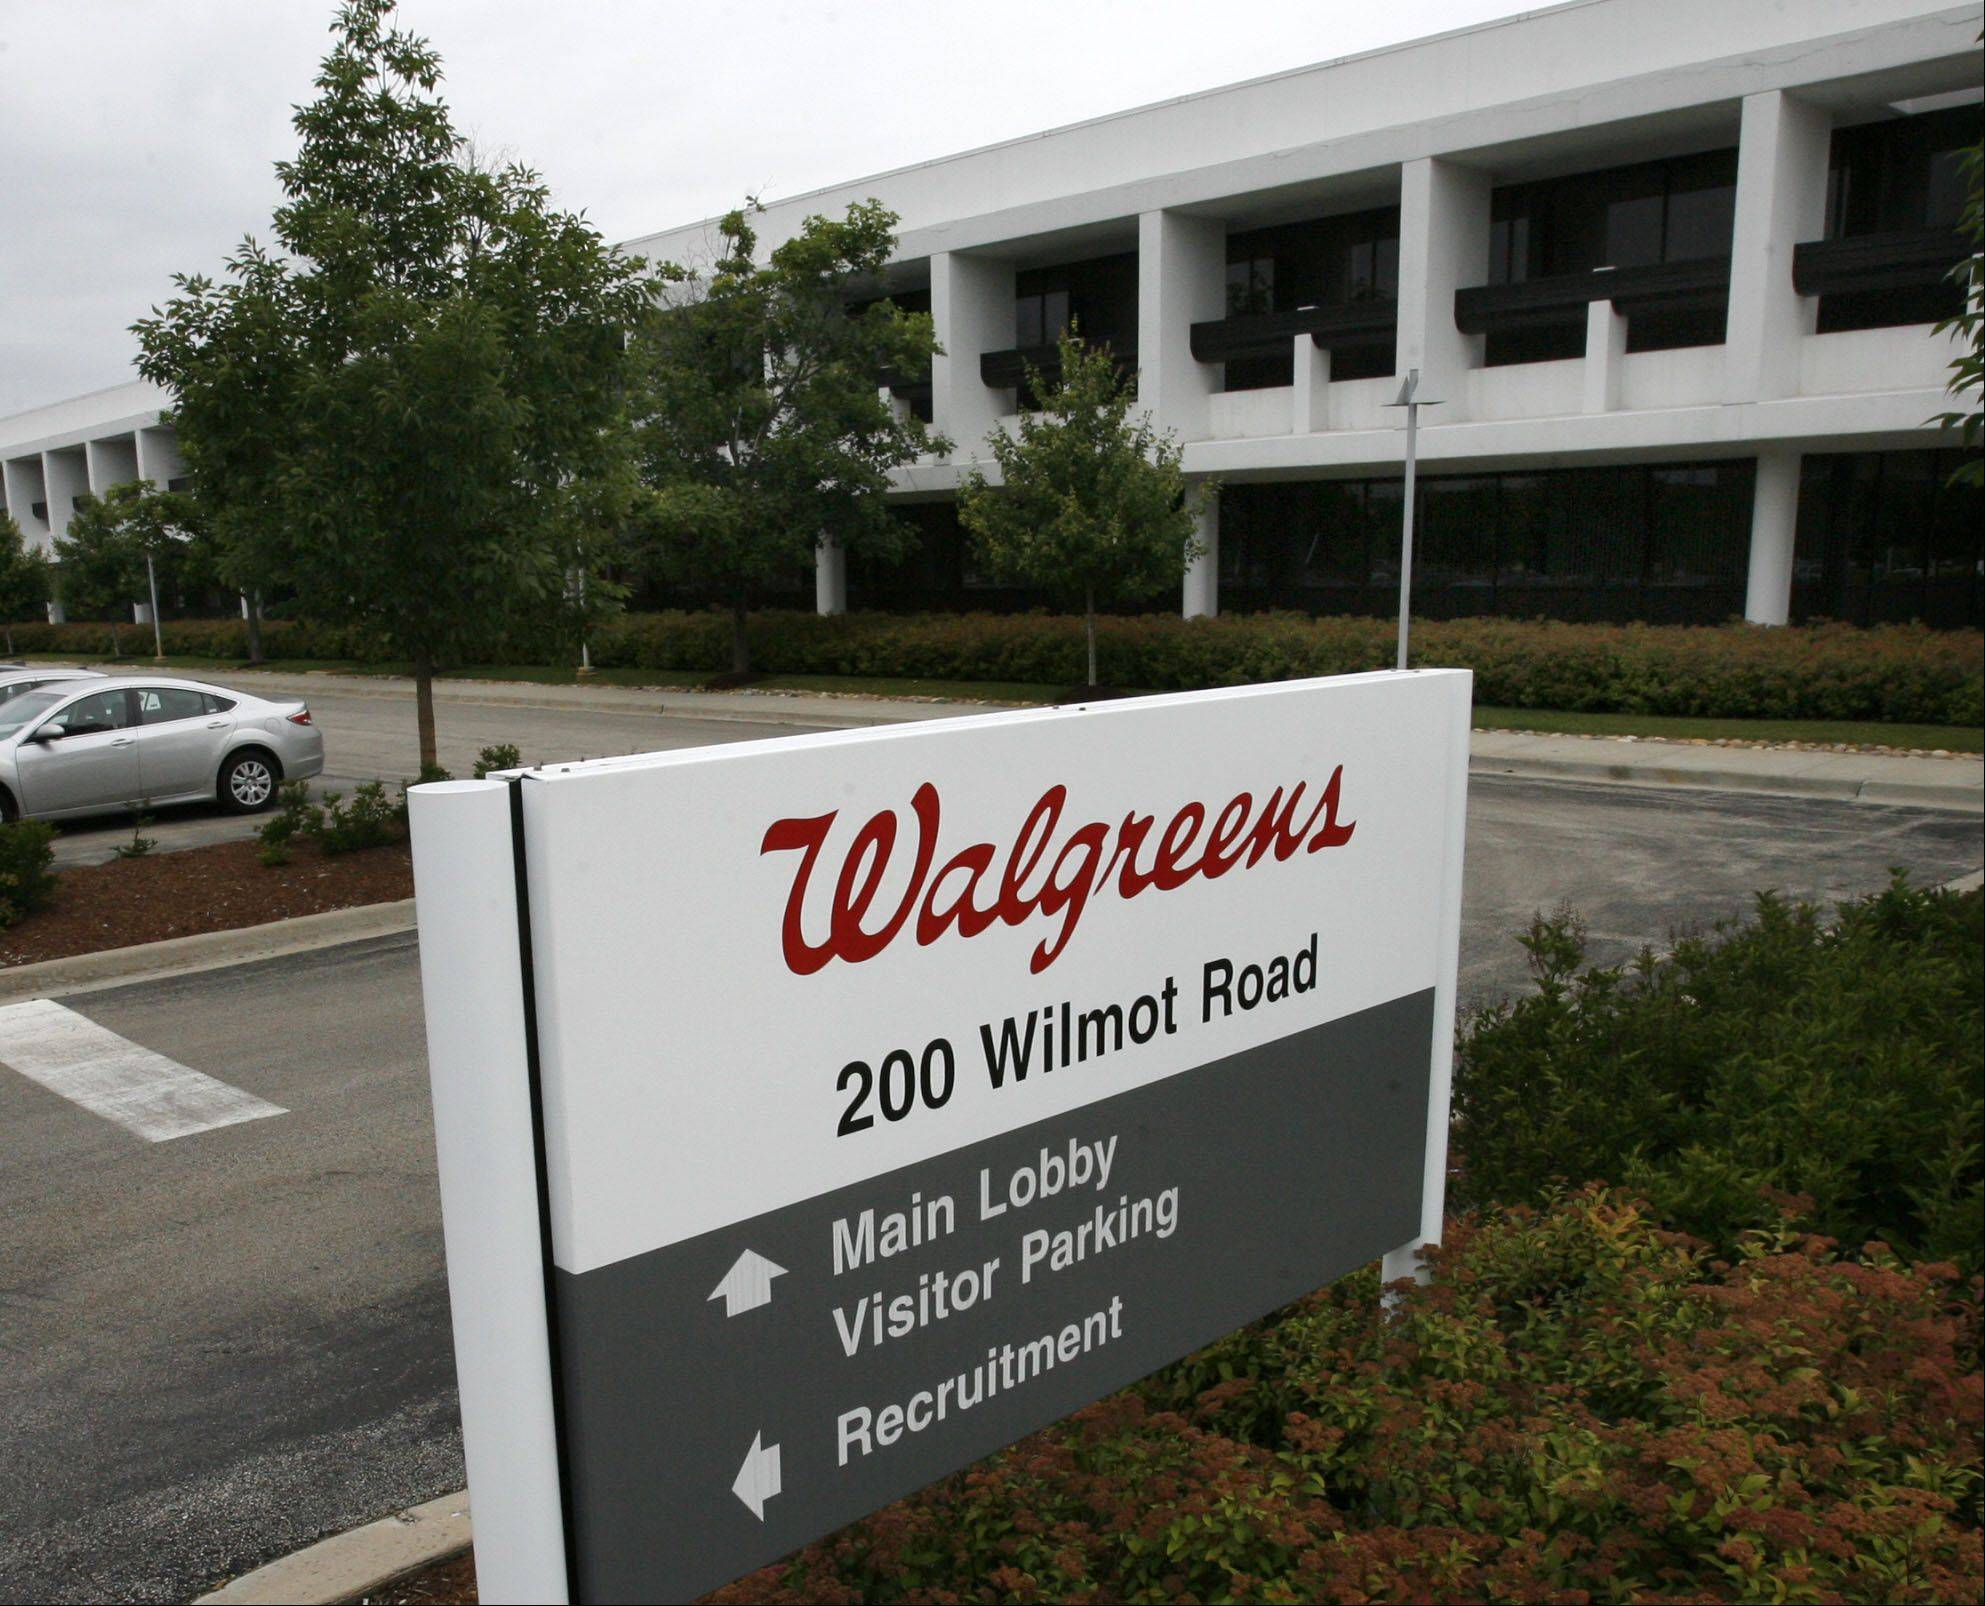 Walgreen has lost customers this year to CVS Caremark Corp. and Wal-Mart Stores Inc. after its agreement to provide prescriptions for Express Scripts customers expired.